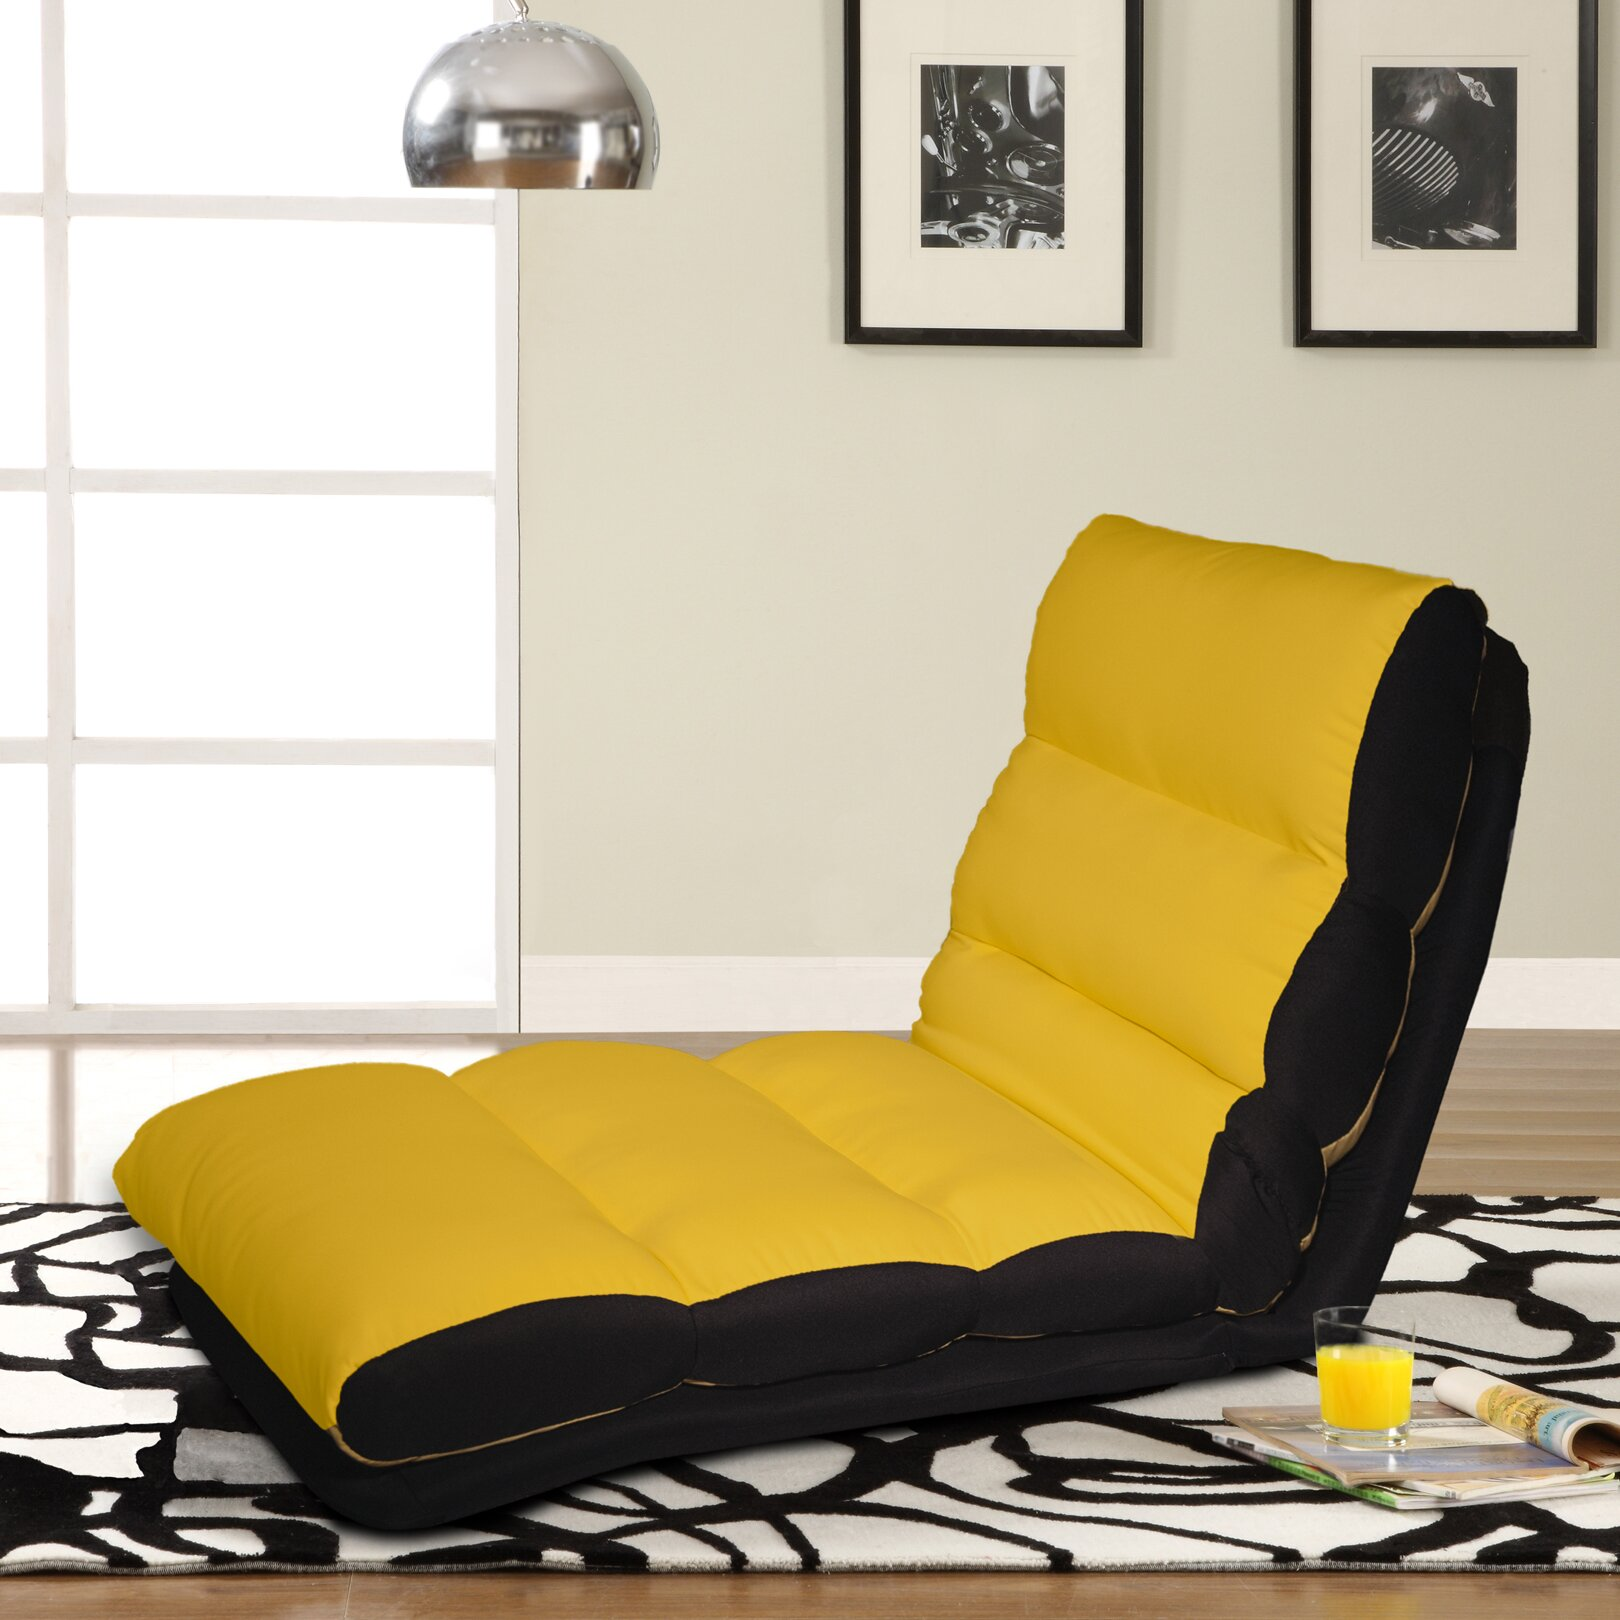 Lifestyle solutions turbo convertible chaise lounger for Chaise convertible